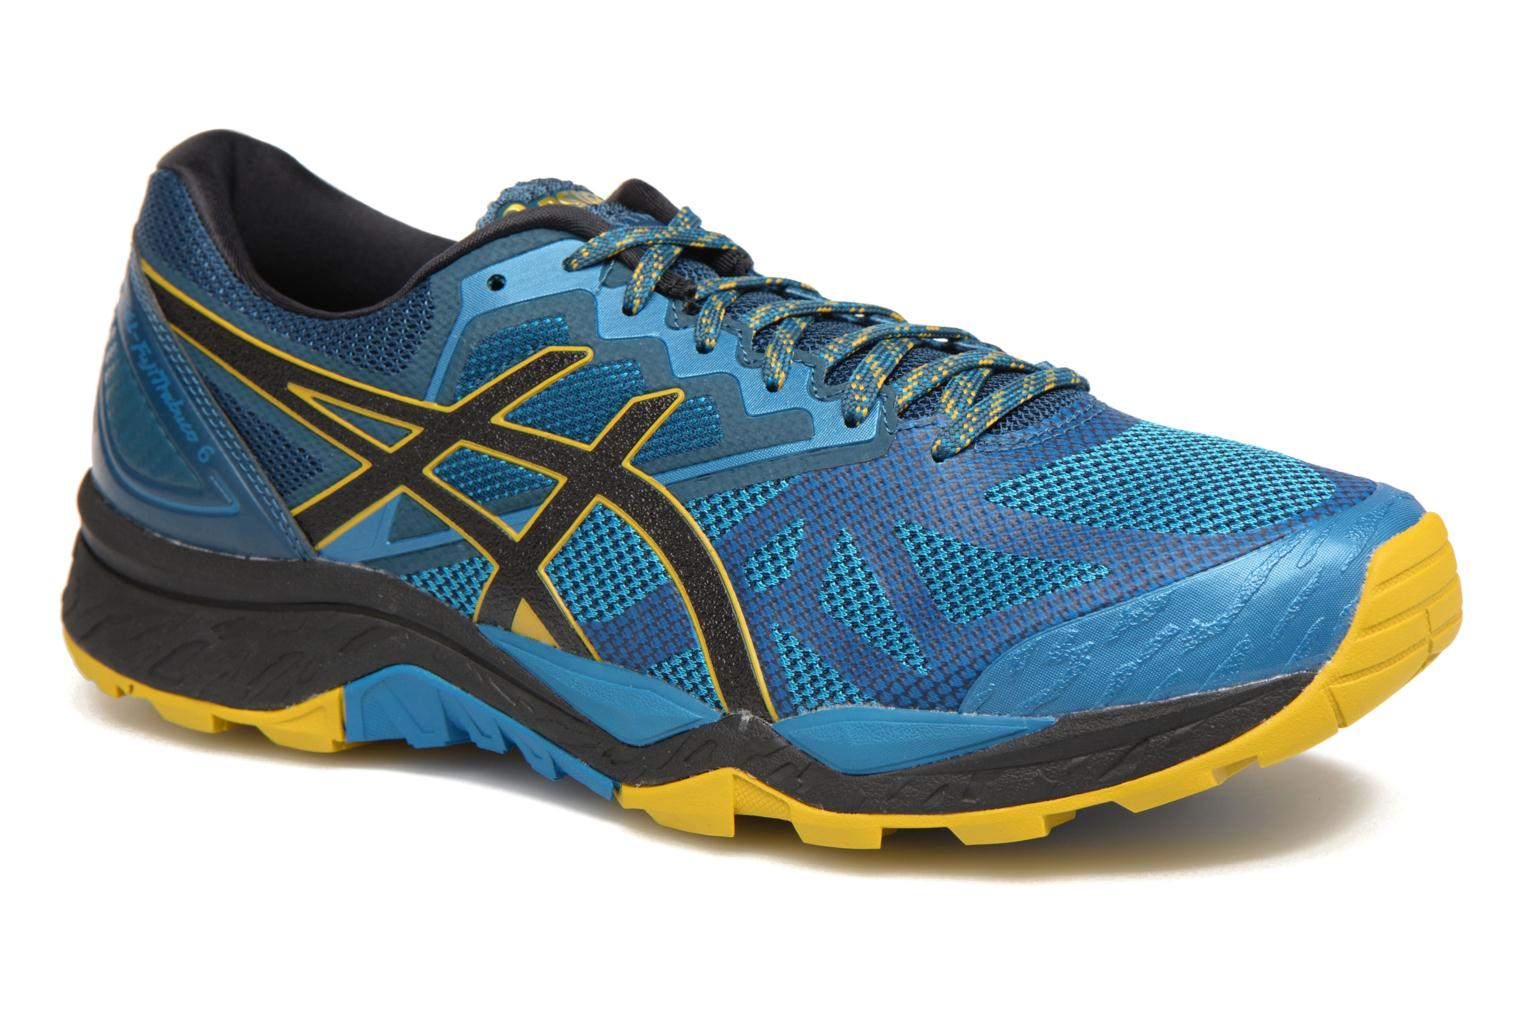 Marques Chaussure homme Asics homme Gel-Fujitrabuco 6 Turkish Tile/Black/Lemon Curry